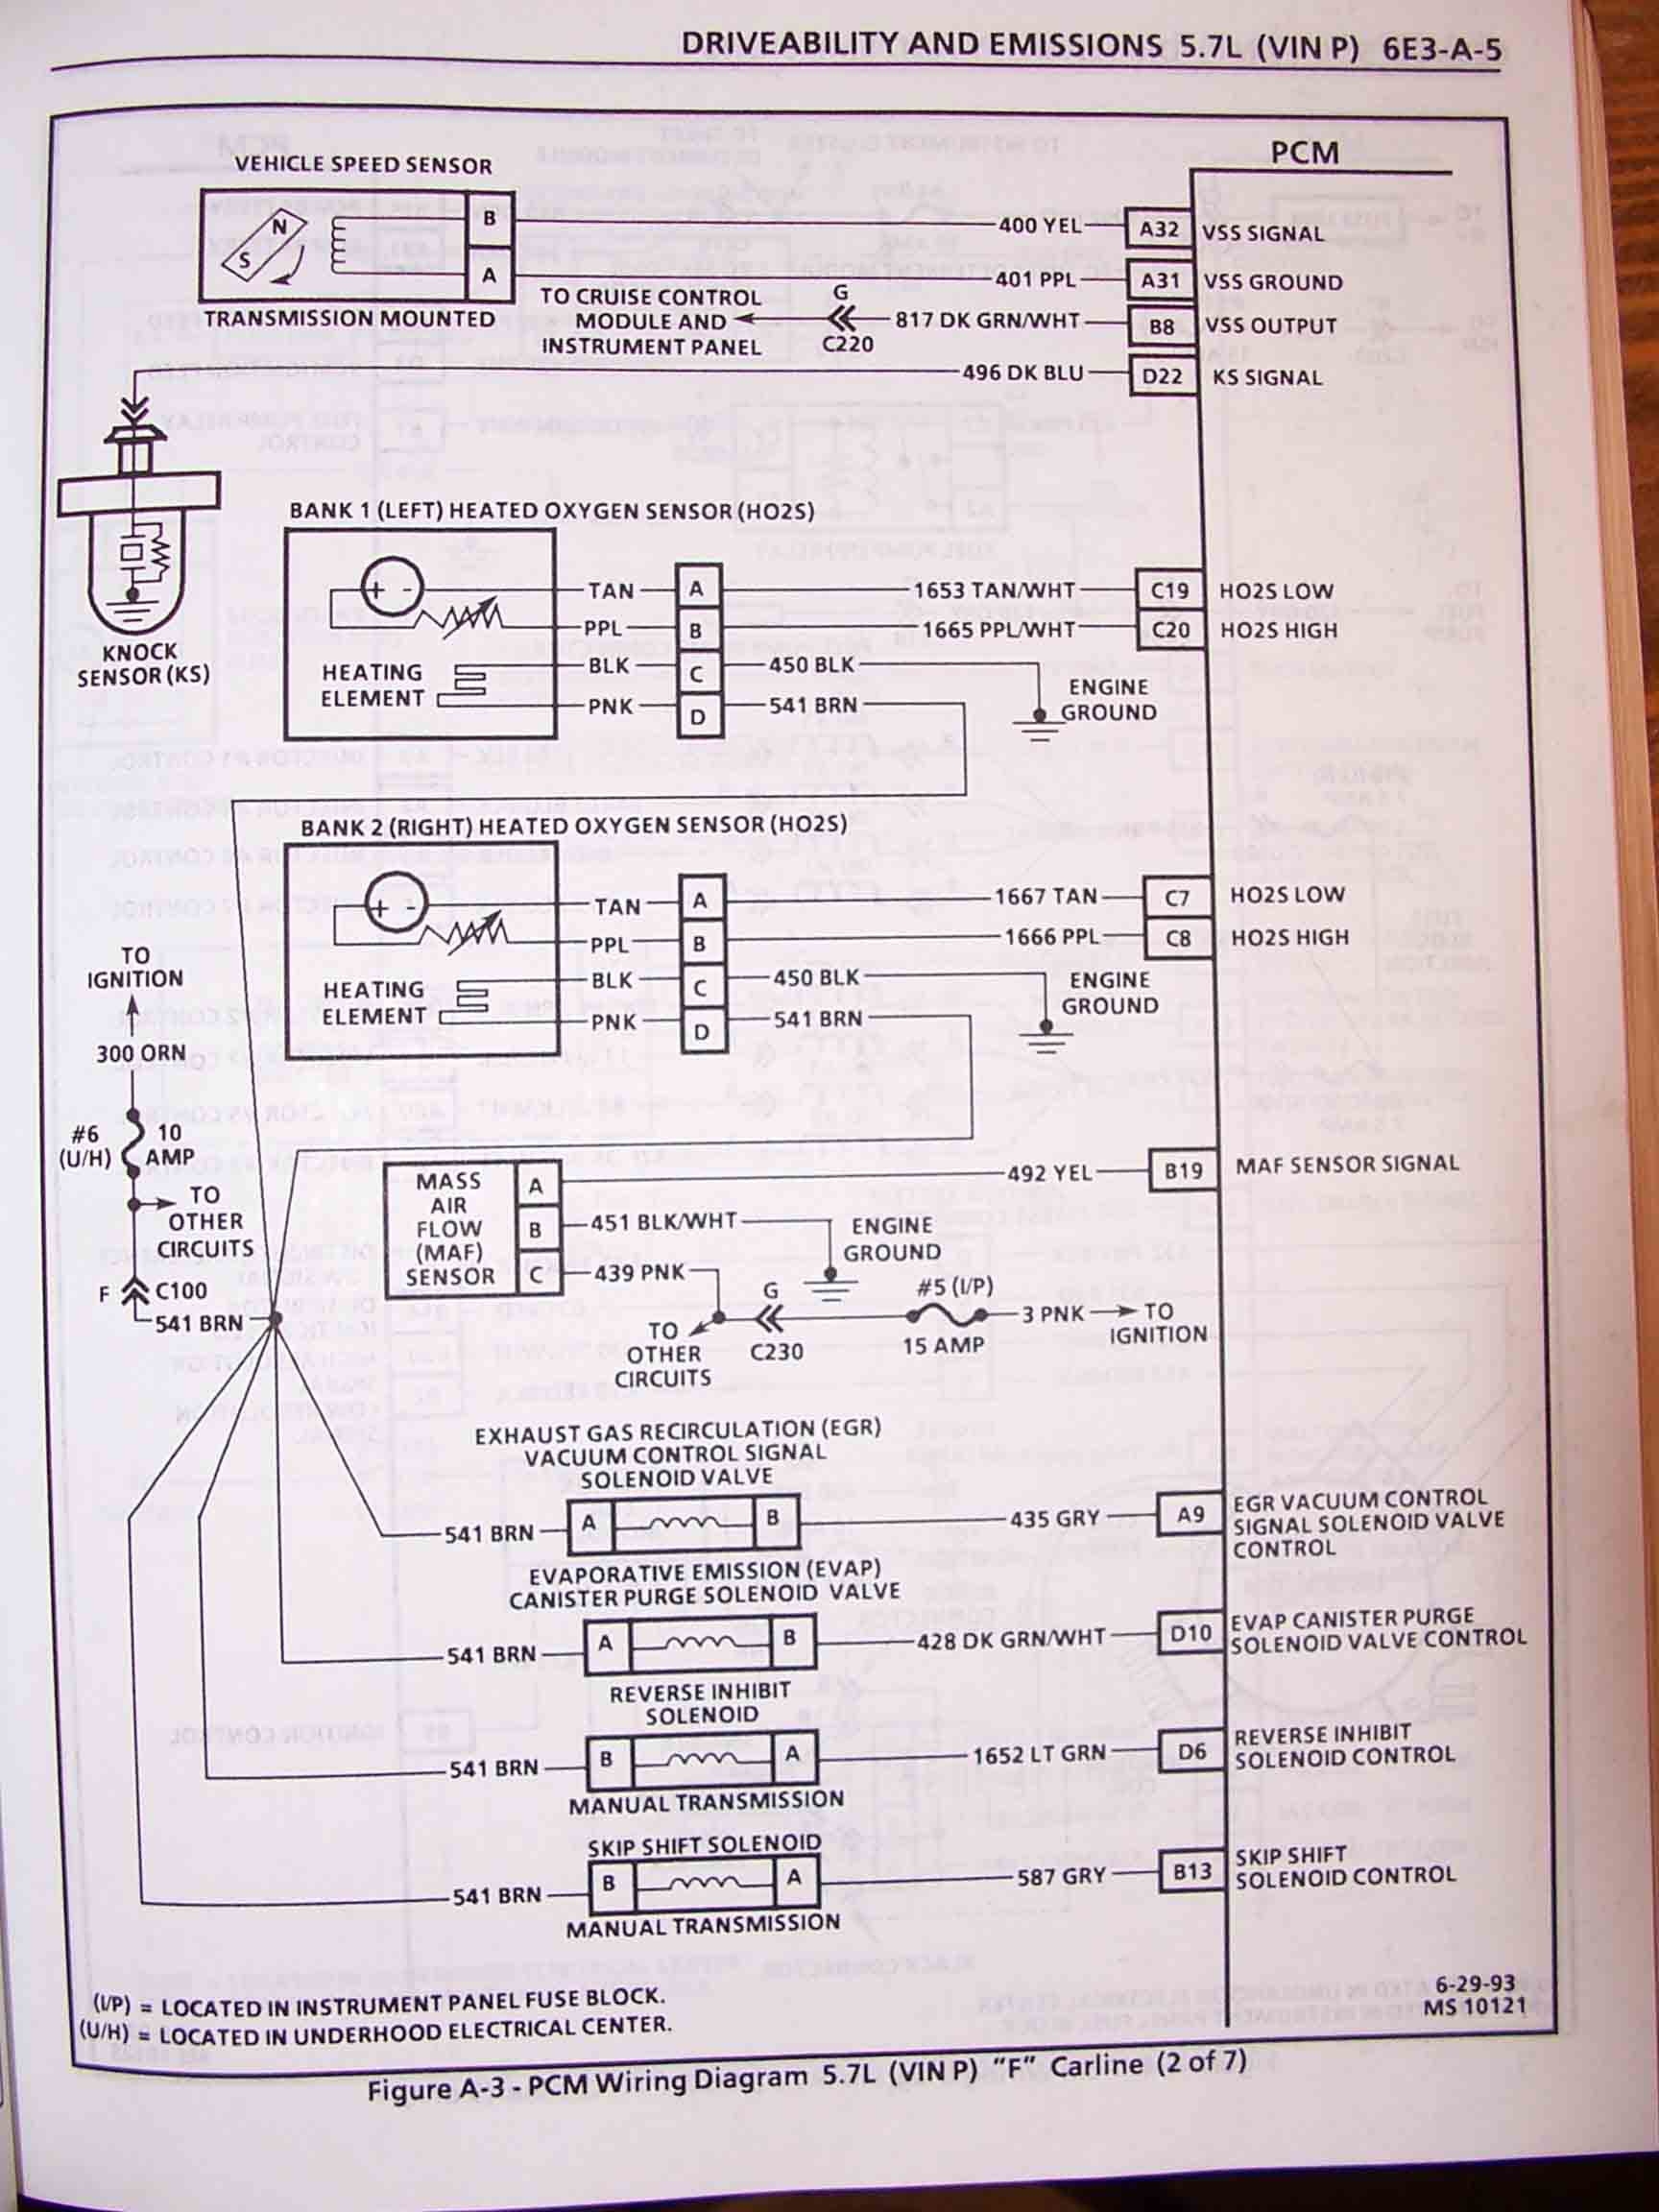 1995 F Body Wire Harness Schematics Lt1 24x Wiring